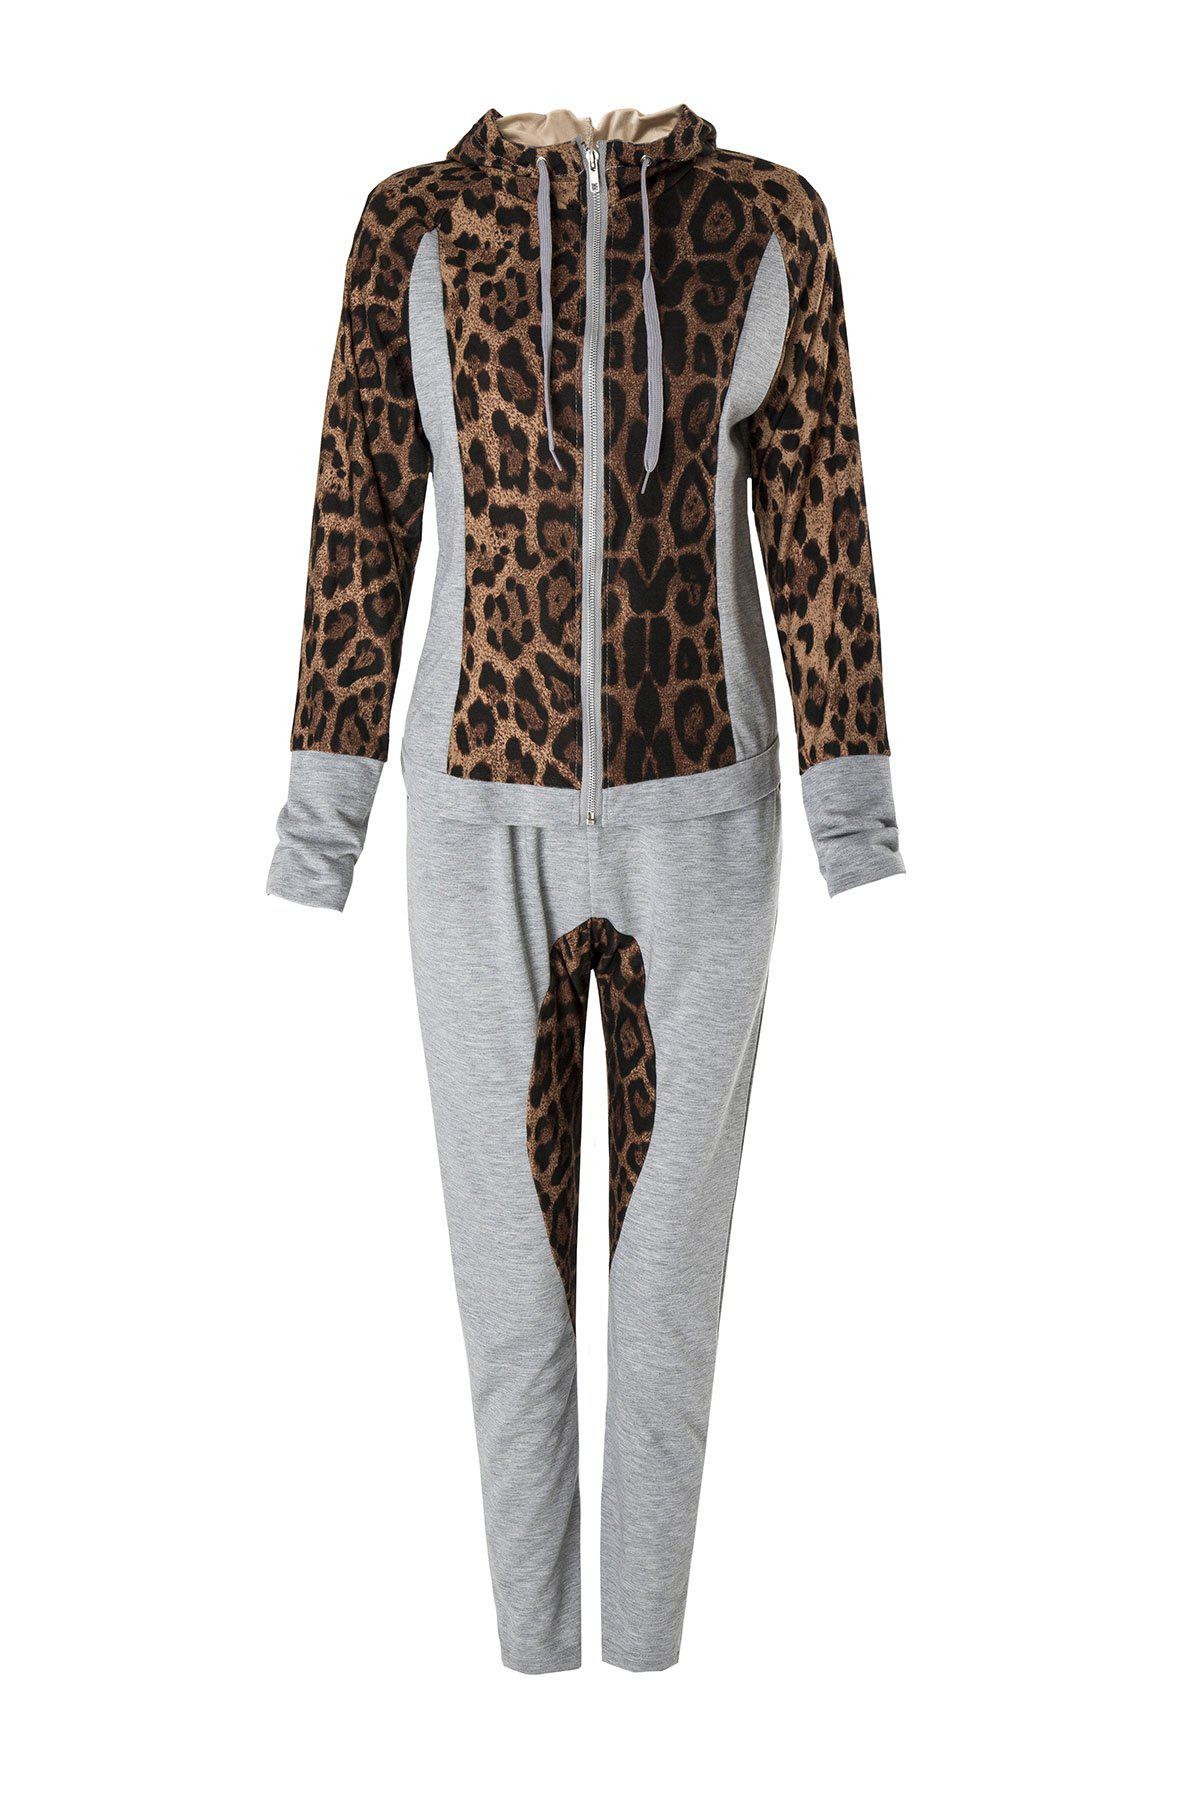 Stylish Long Sleeve Hooded Leopard Print Hoodie + Drawstring Pants Women's Twinset - GRAY L